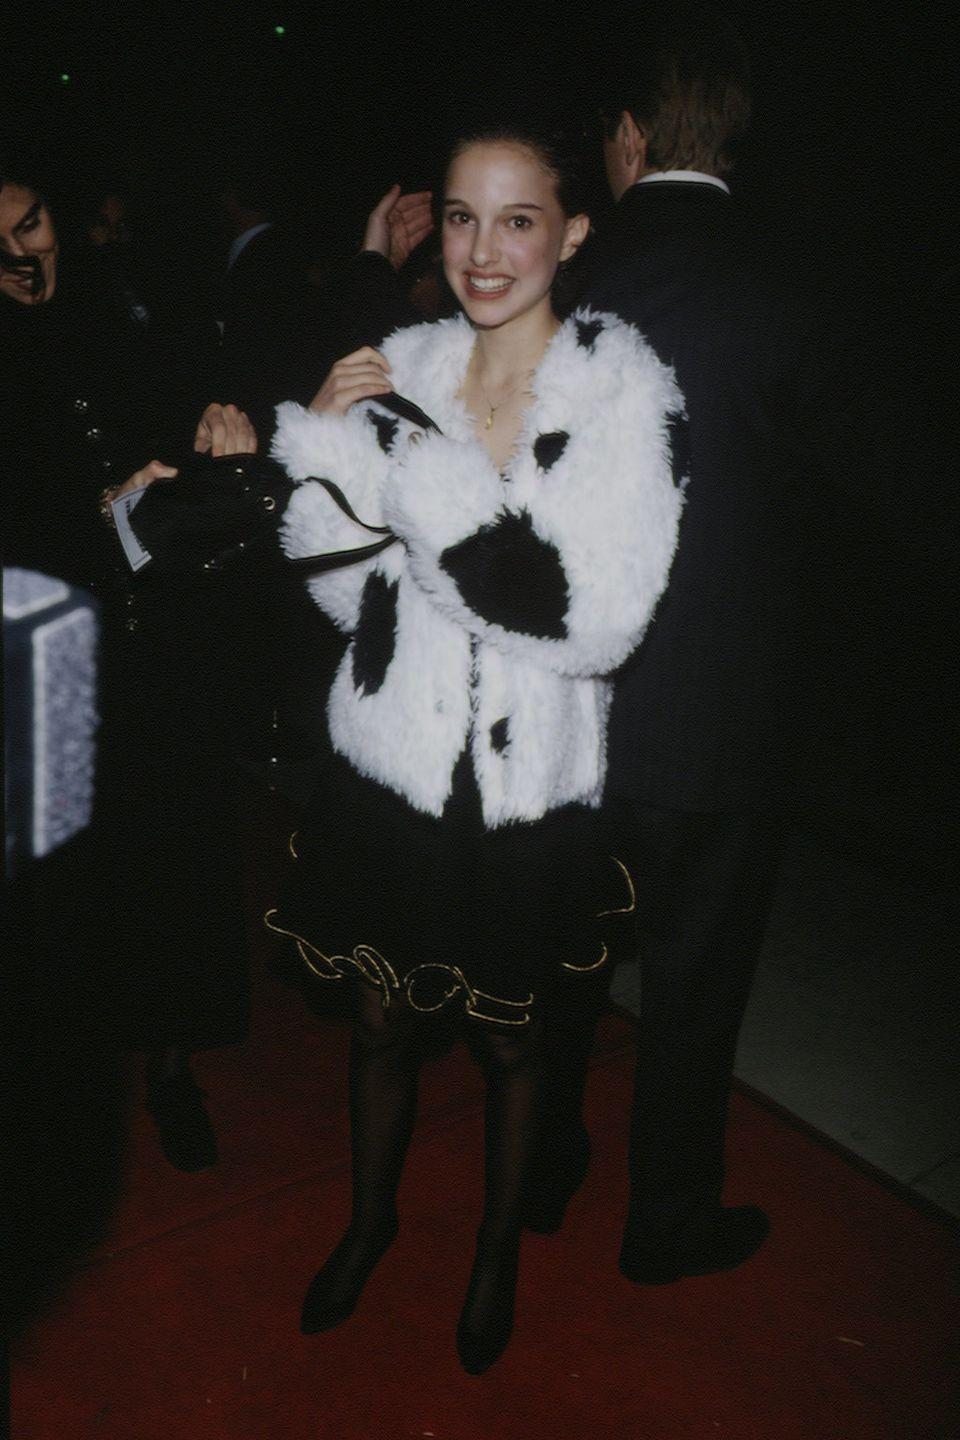 <p>Natalie Portman made her acting debut at the age of 12 in <em>León the Professional</em>, and she arrived on the red carpet in true '90s fashion. </p>